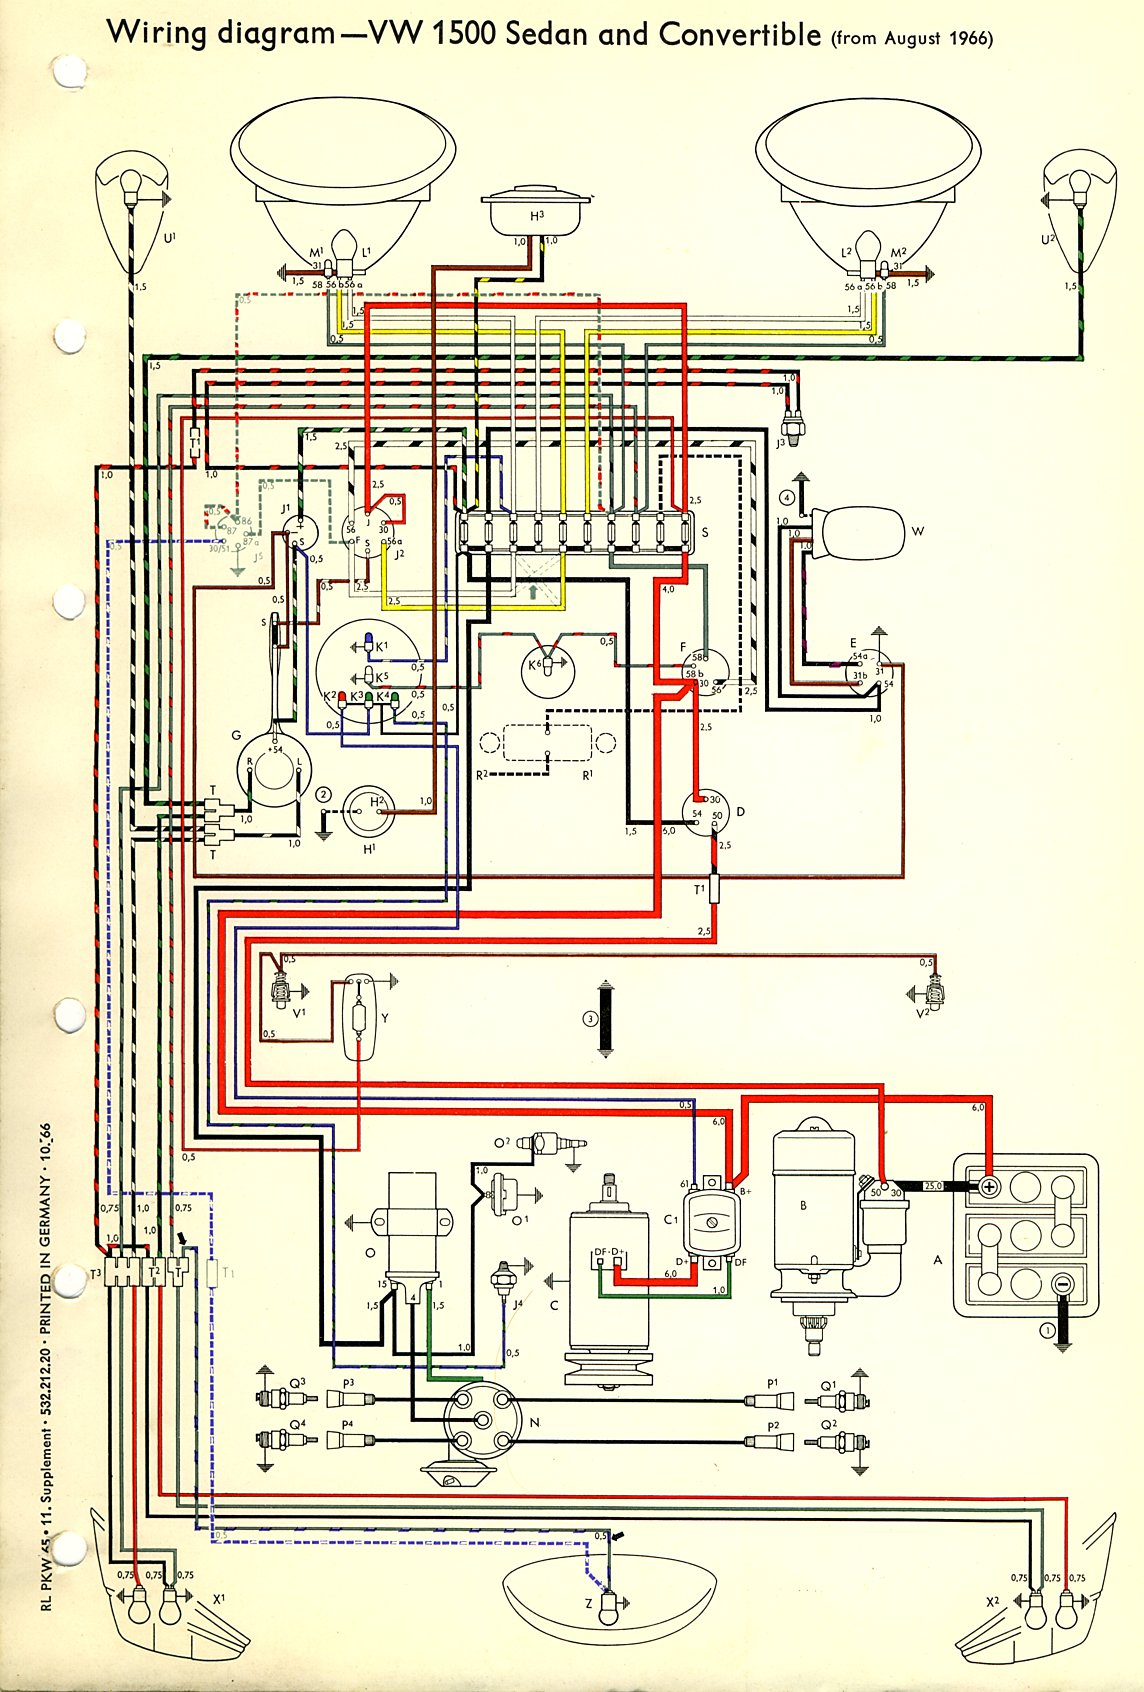 1956 Beetle Wiring Diagram Wire Center Ford F100 1973 Super Also As Well 1966 Rh Lsoncology Co 1974 Vw